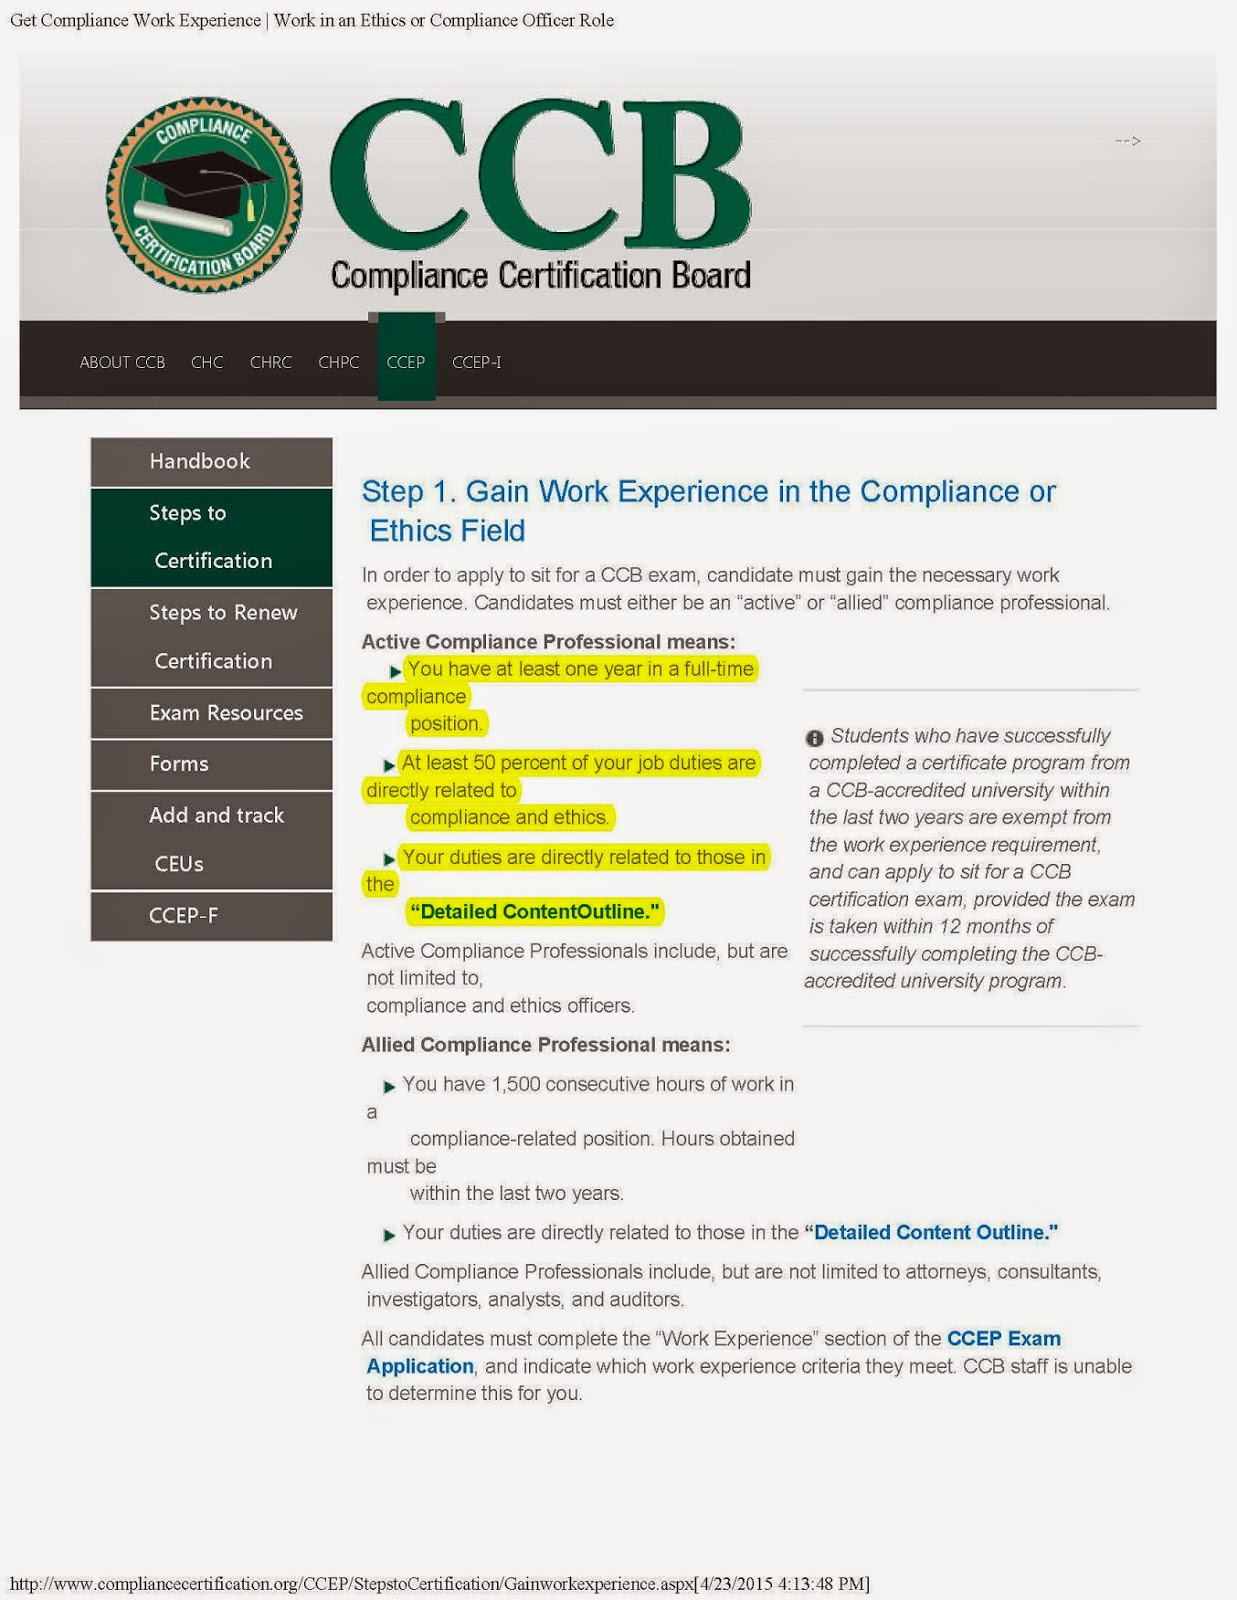 Csu faculty voice april 2015 many professions require ceus to maintain certification ccb requires 20 ccb approved continuing education units in order to sit for the examination 1betcityfo Images